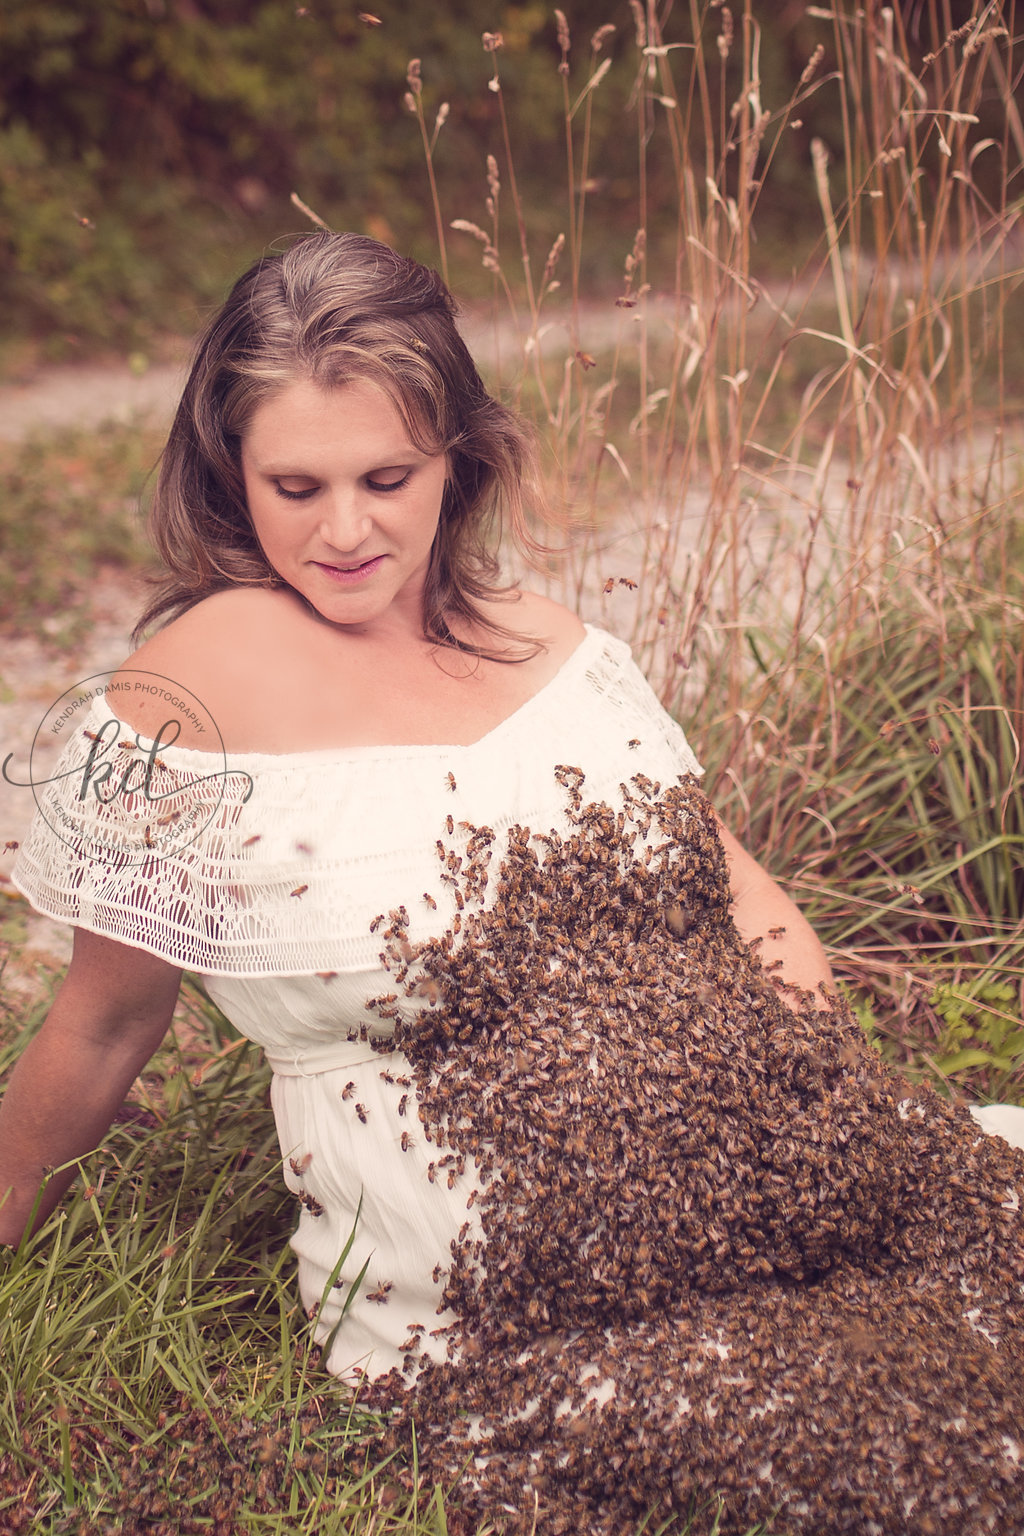 Photographer Kendrah Damis maternity shoot with friend, Emily Mueller,  a beekeeper and owner of Mueller Honey Bee Company near Akron. (Kendrah Damis Photography)